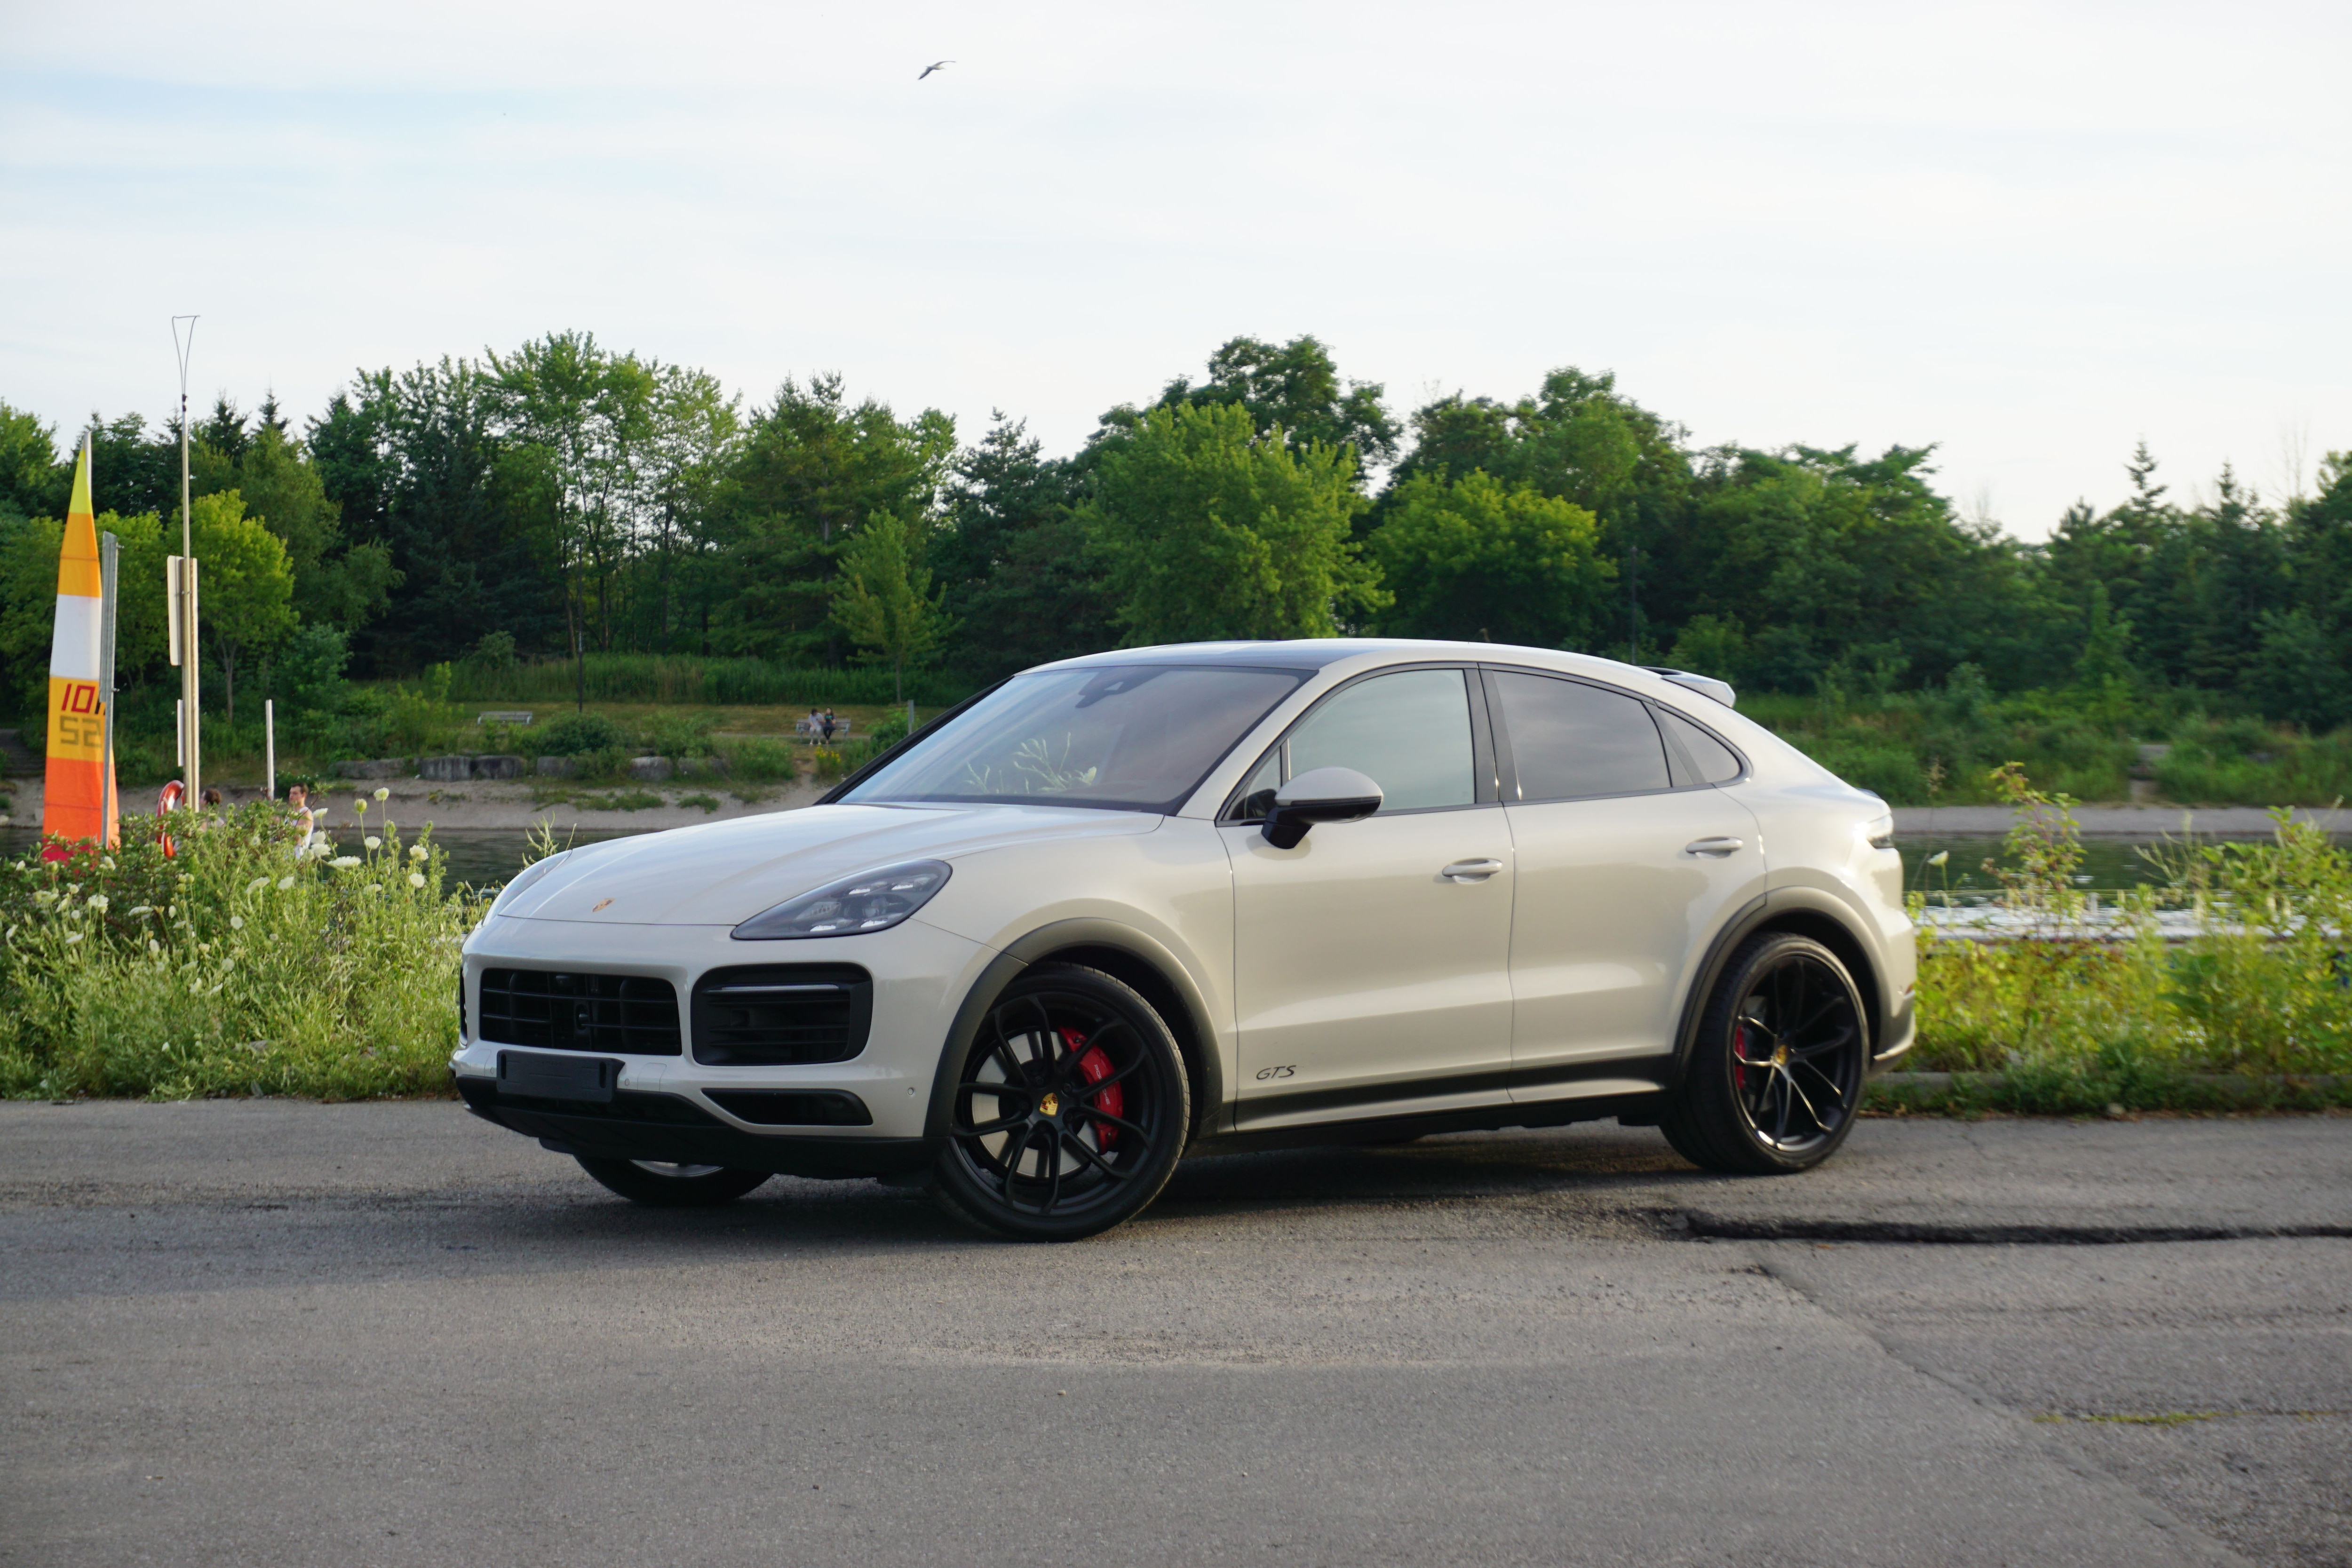 Review The 2021 Porsche Cayenne Gts Coupe Is An Suv That Handles Like A Sports Car The Globe And Mail